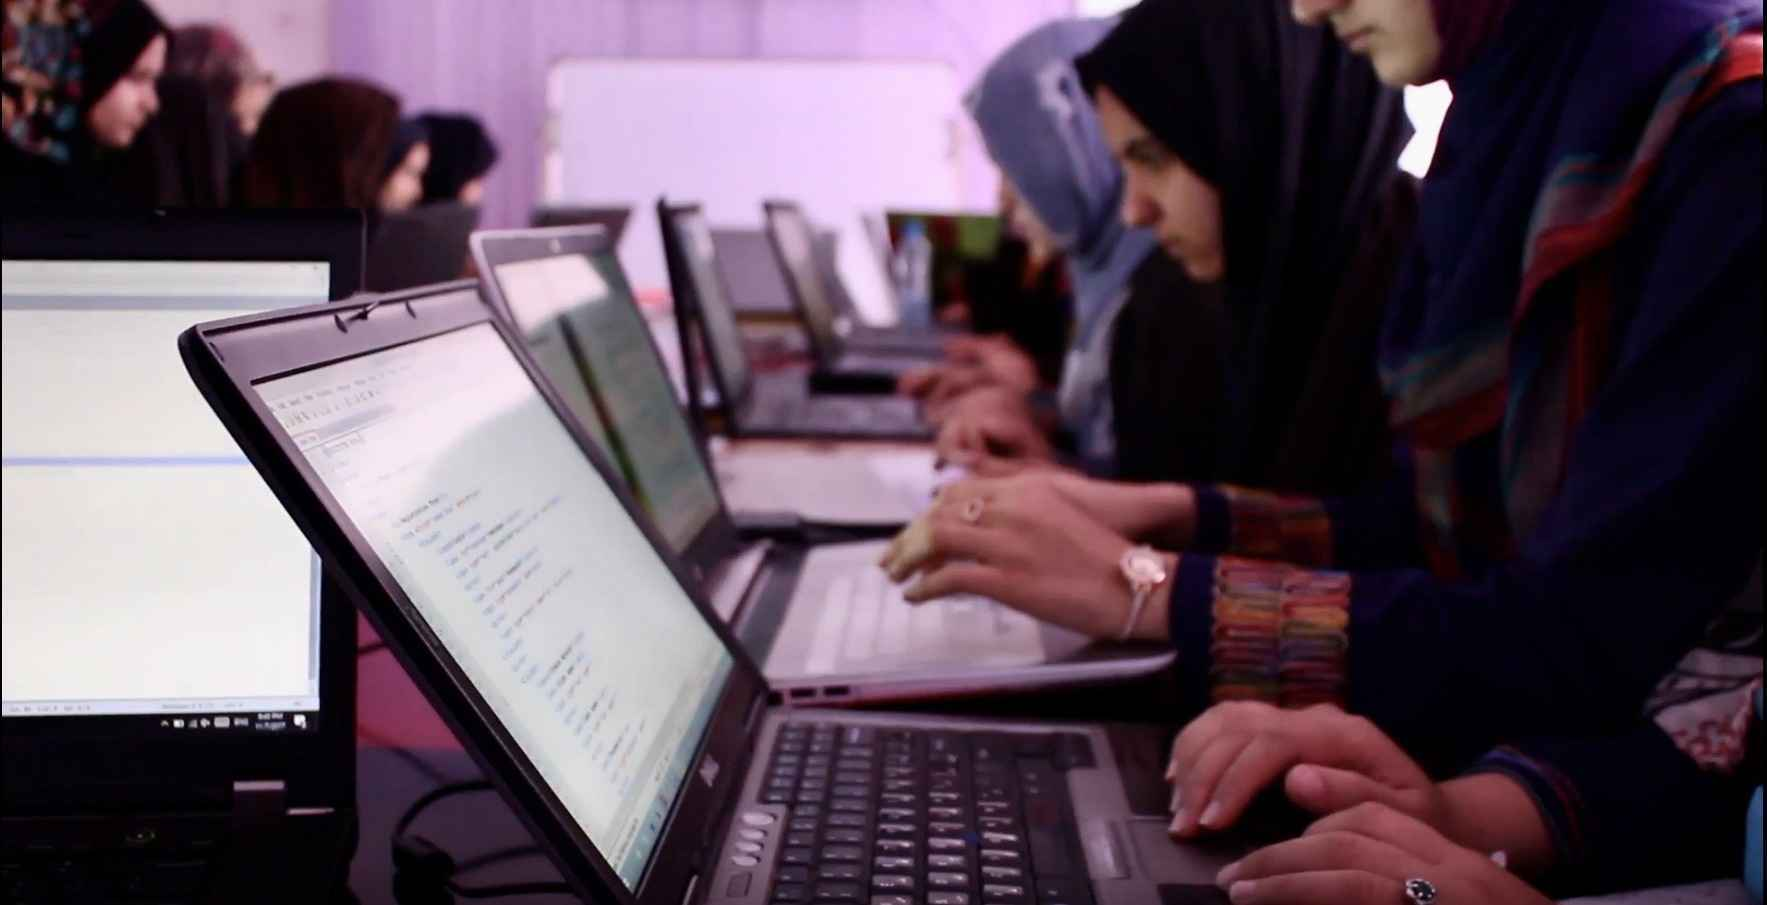 Share Hope with #AfghanGirlsCode with Your Year-End Giving! image